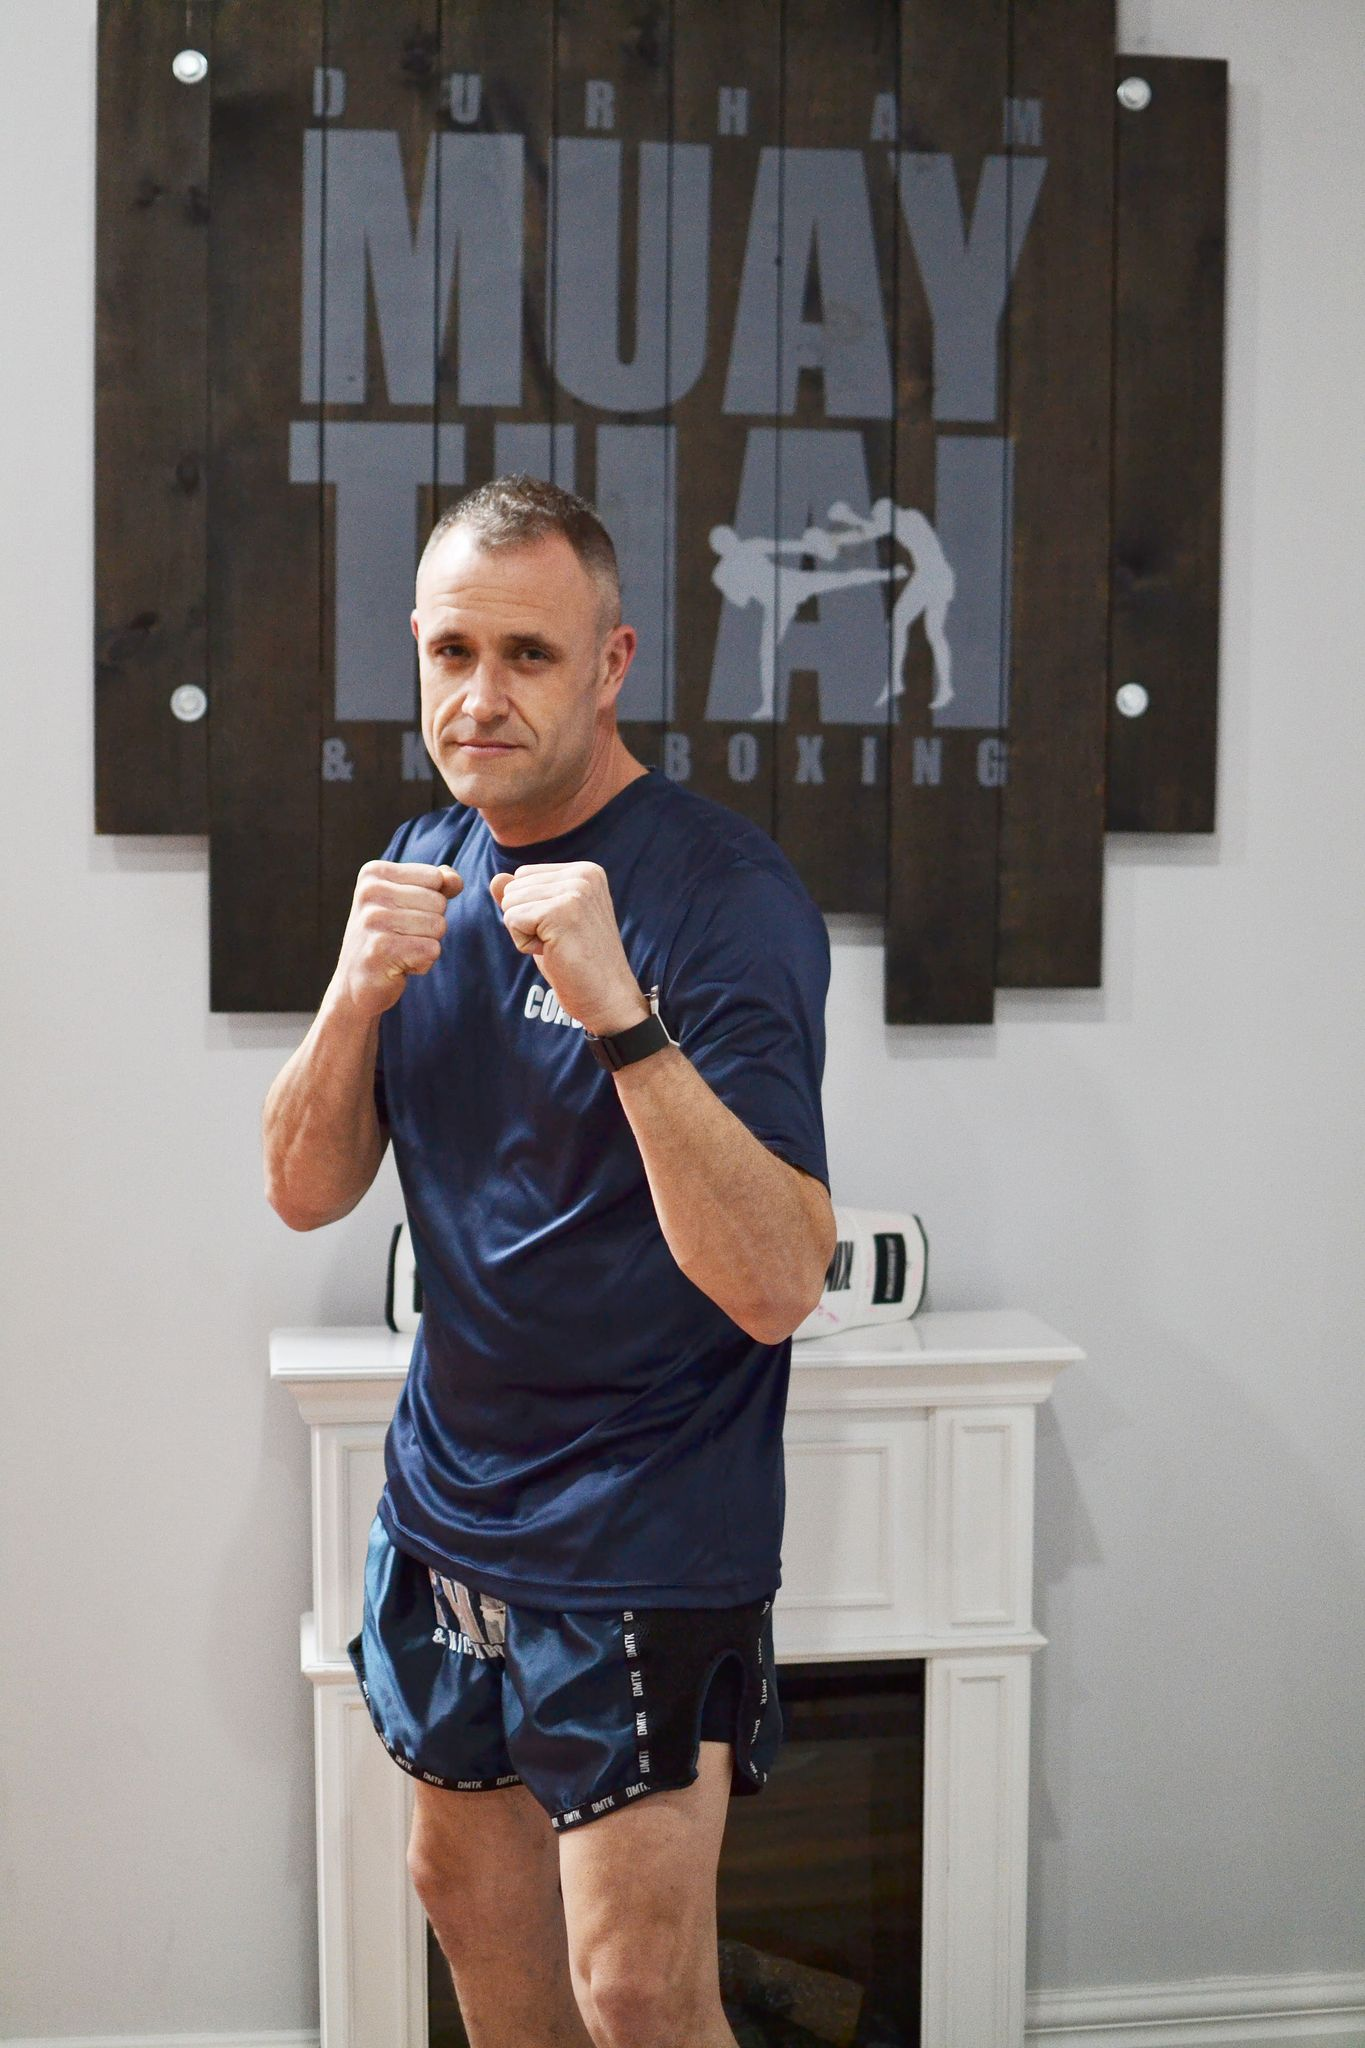 Lloyd Lawrence - Durham Muay Thai & Kickboxing